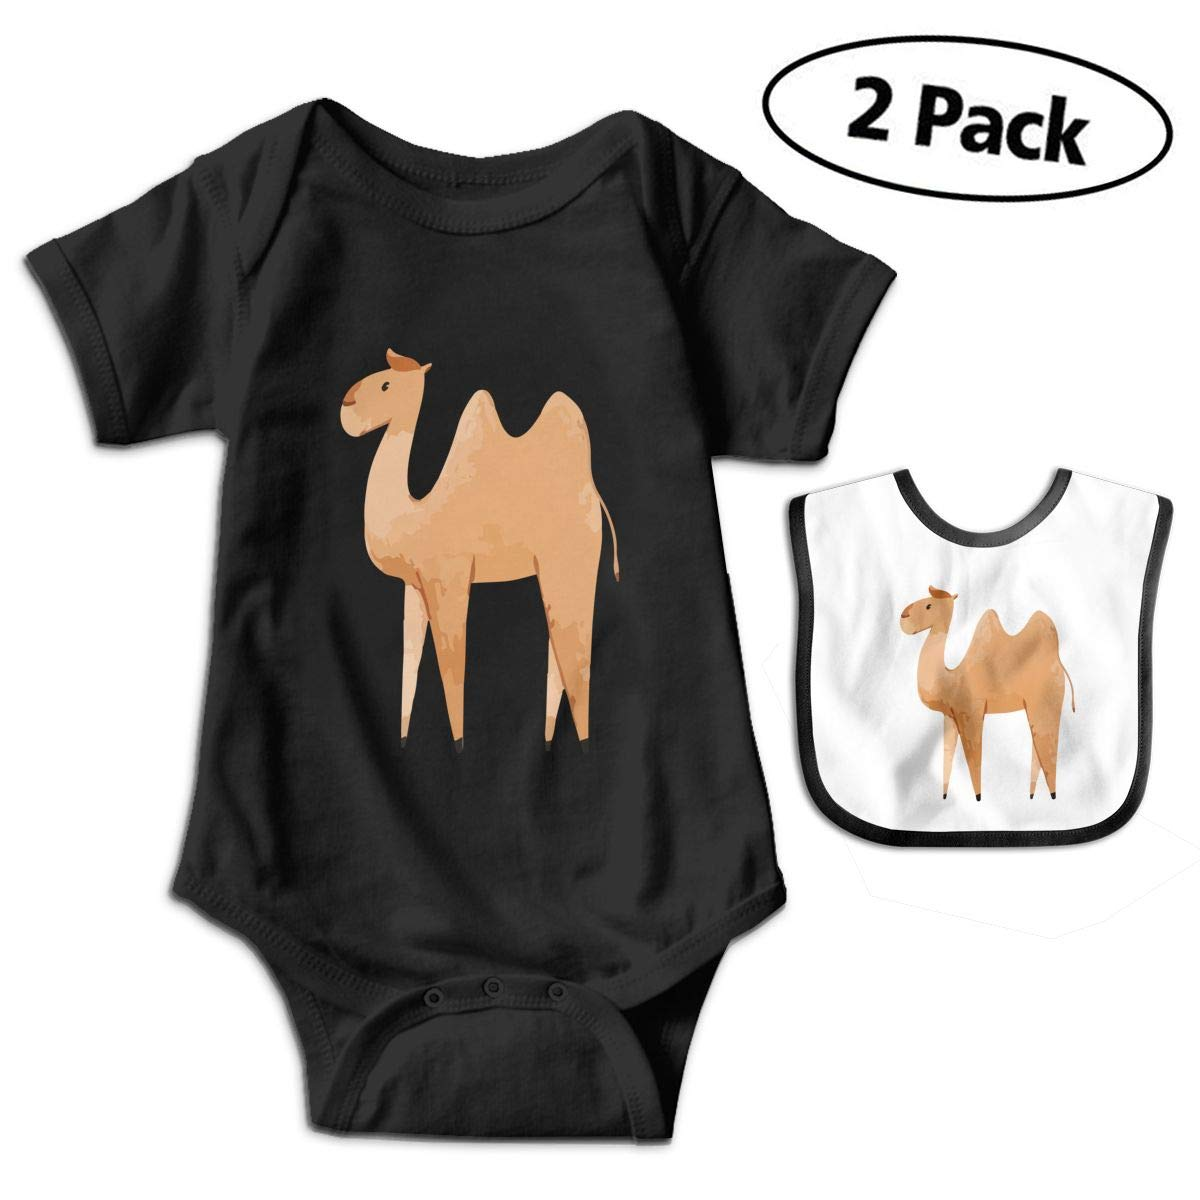 Llama Cute Animal Baby Boys Girls Cotton Romper Bodysuit Infant Jumpsuit Outfit